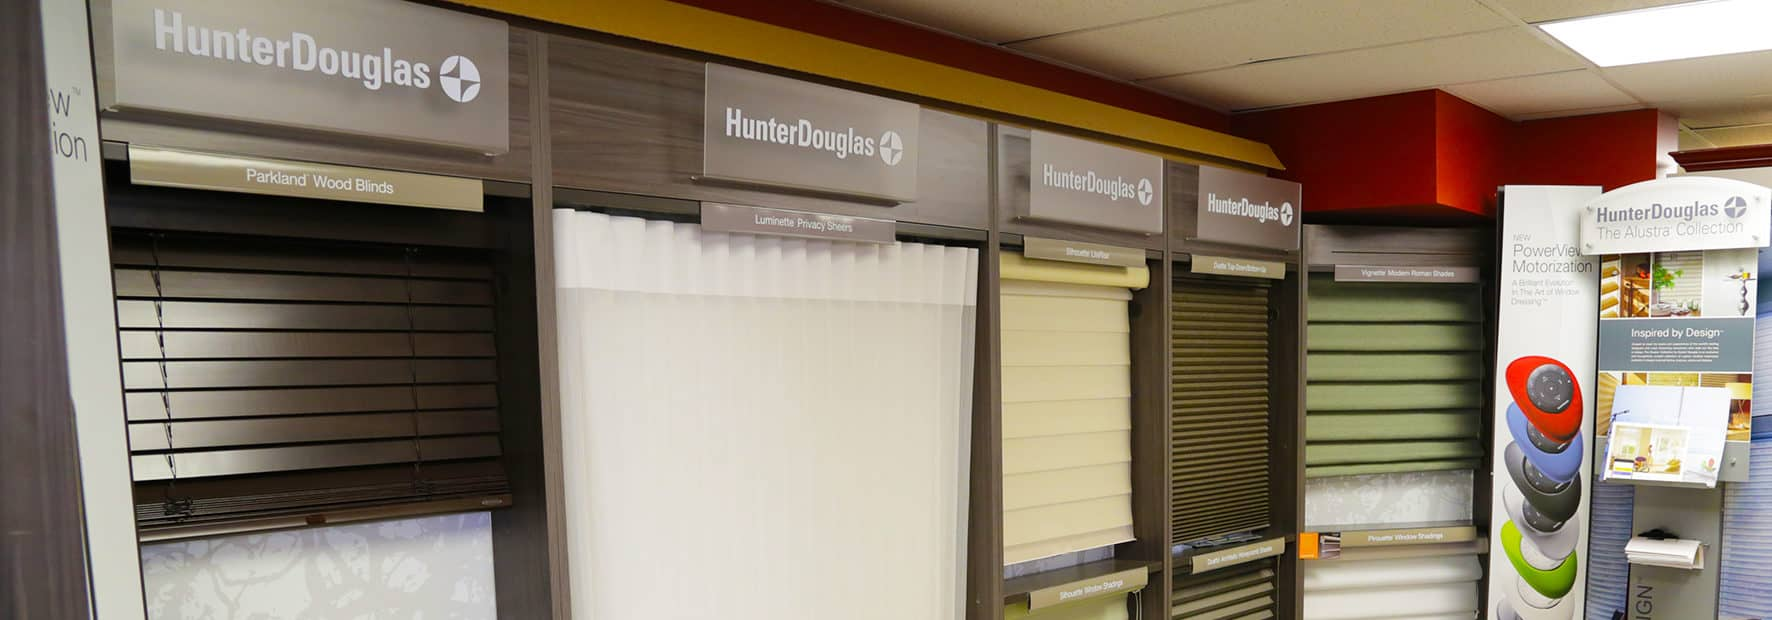 Hunter Douglas Blinds Calgary Alberta